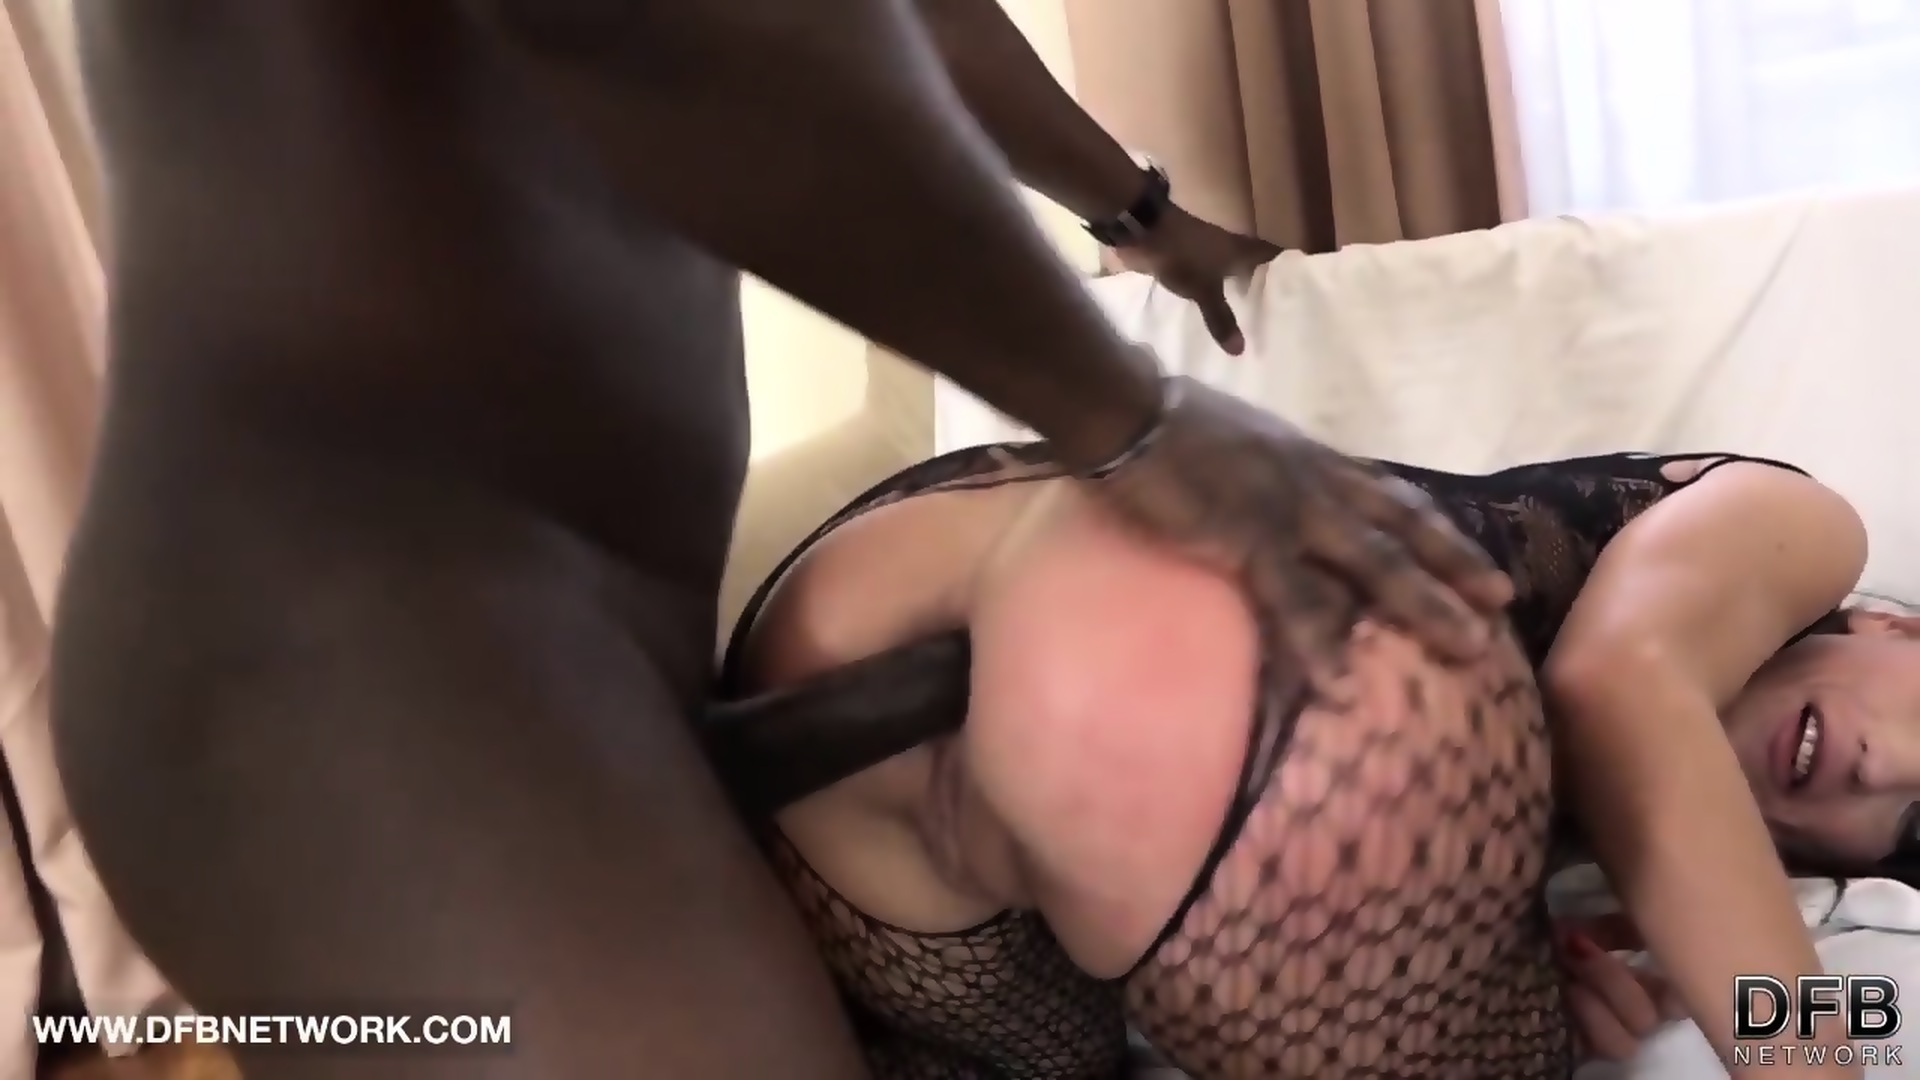 Interracial double anal with